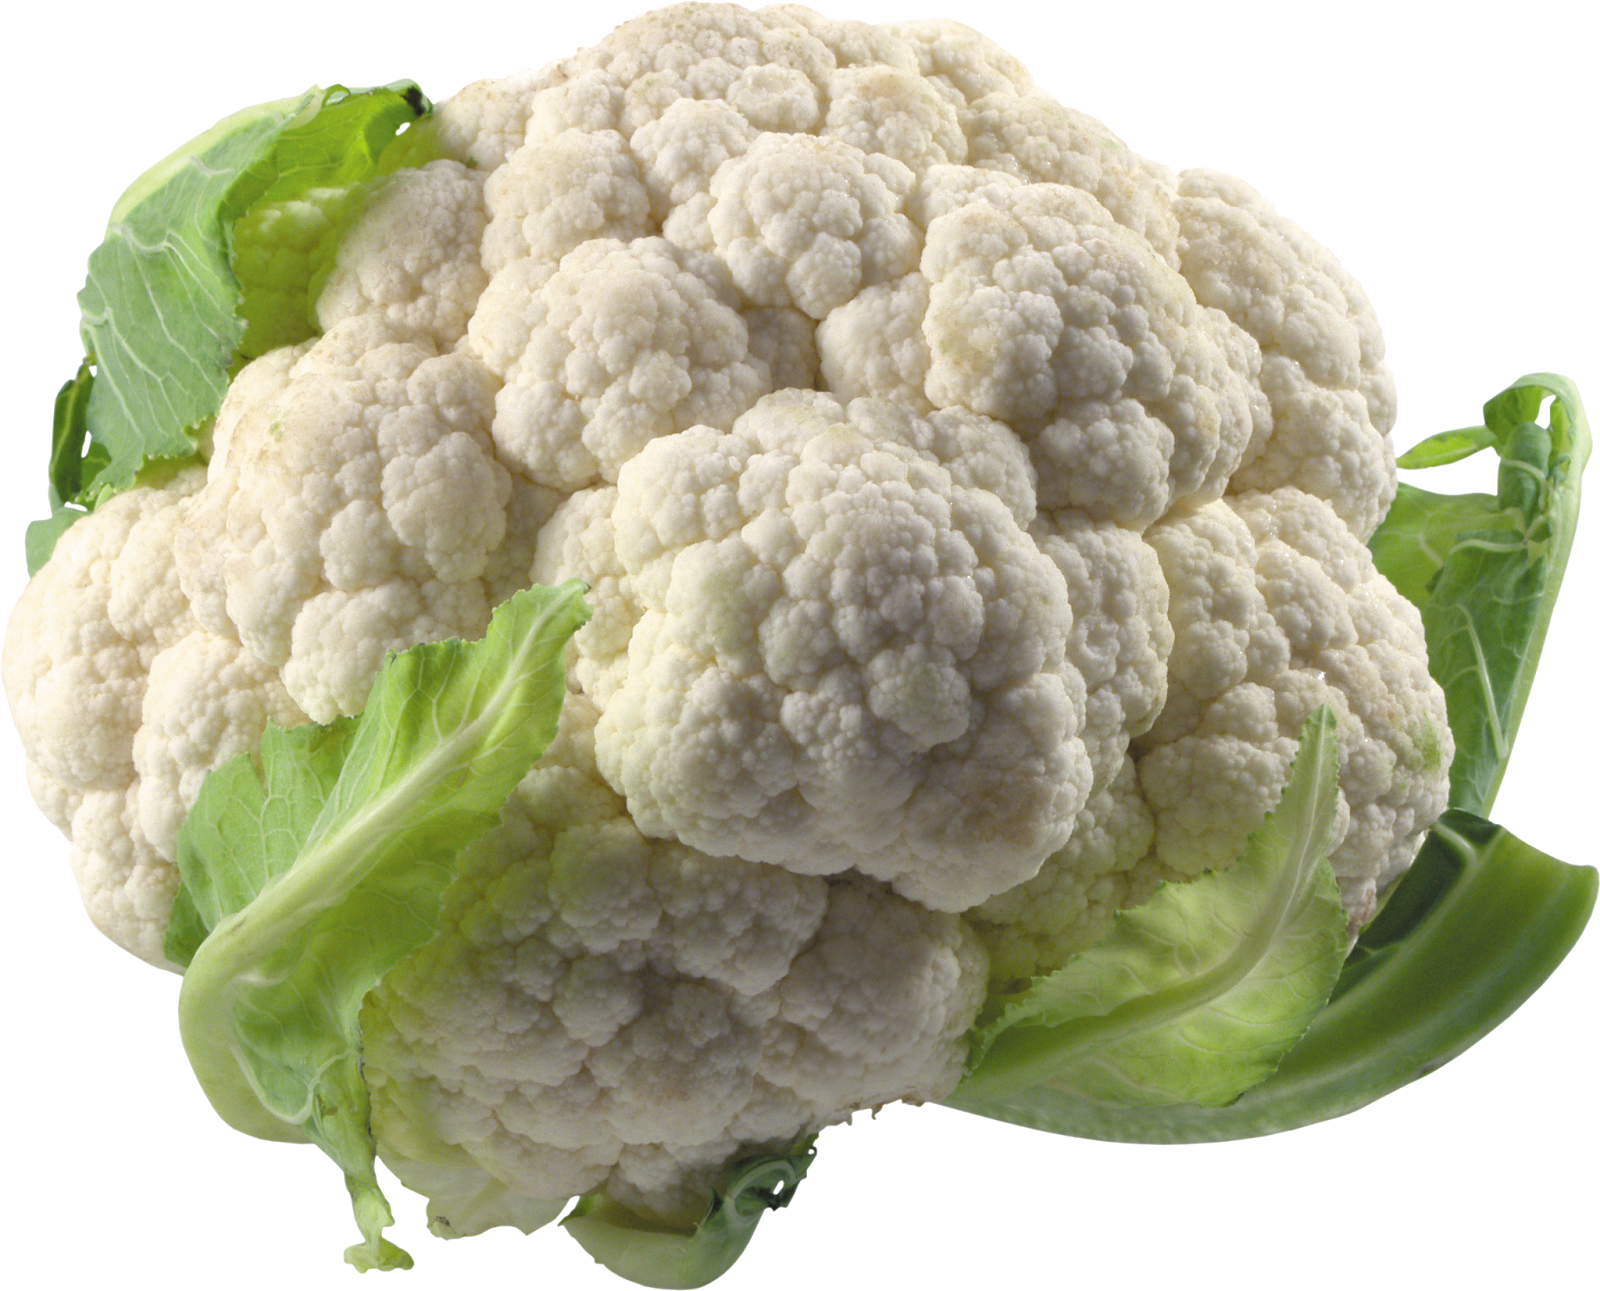 Painting Cauliflower